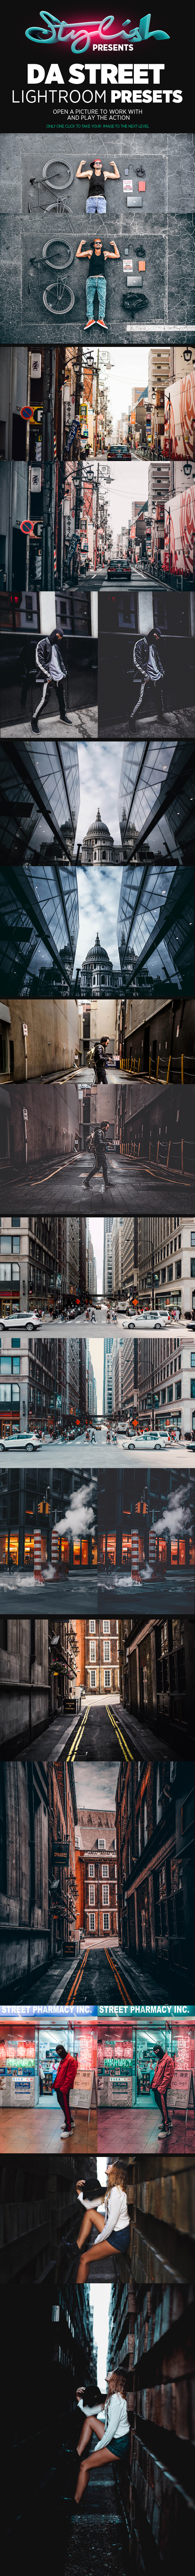 GraphicRiver DA Street Stylish Lightroom Presets 21138475